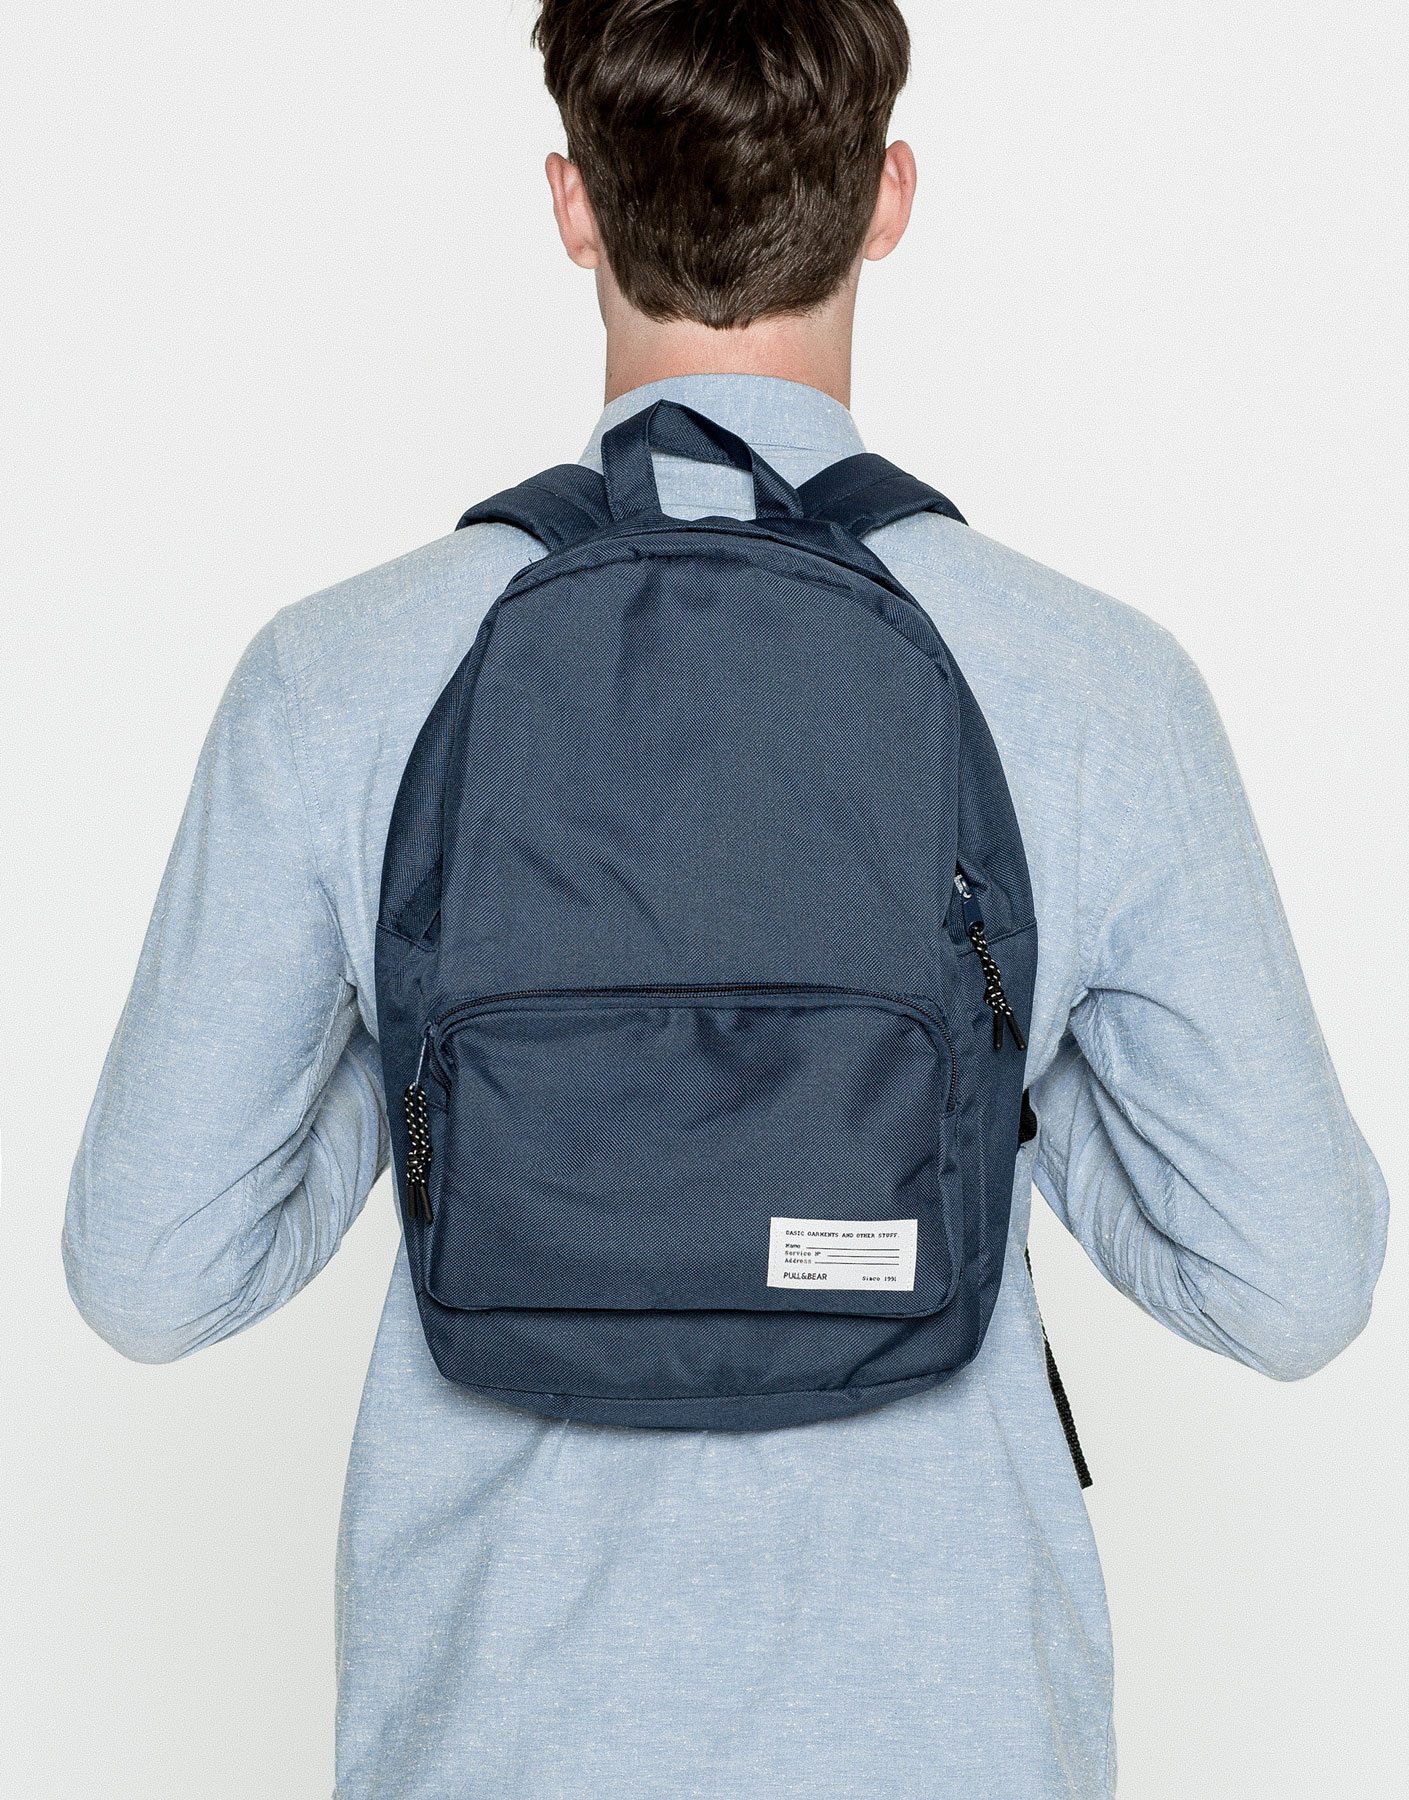 Basic colourful backpack